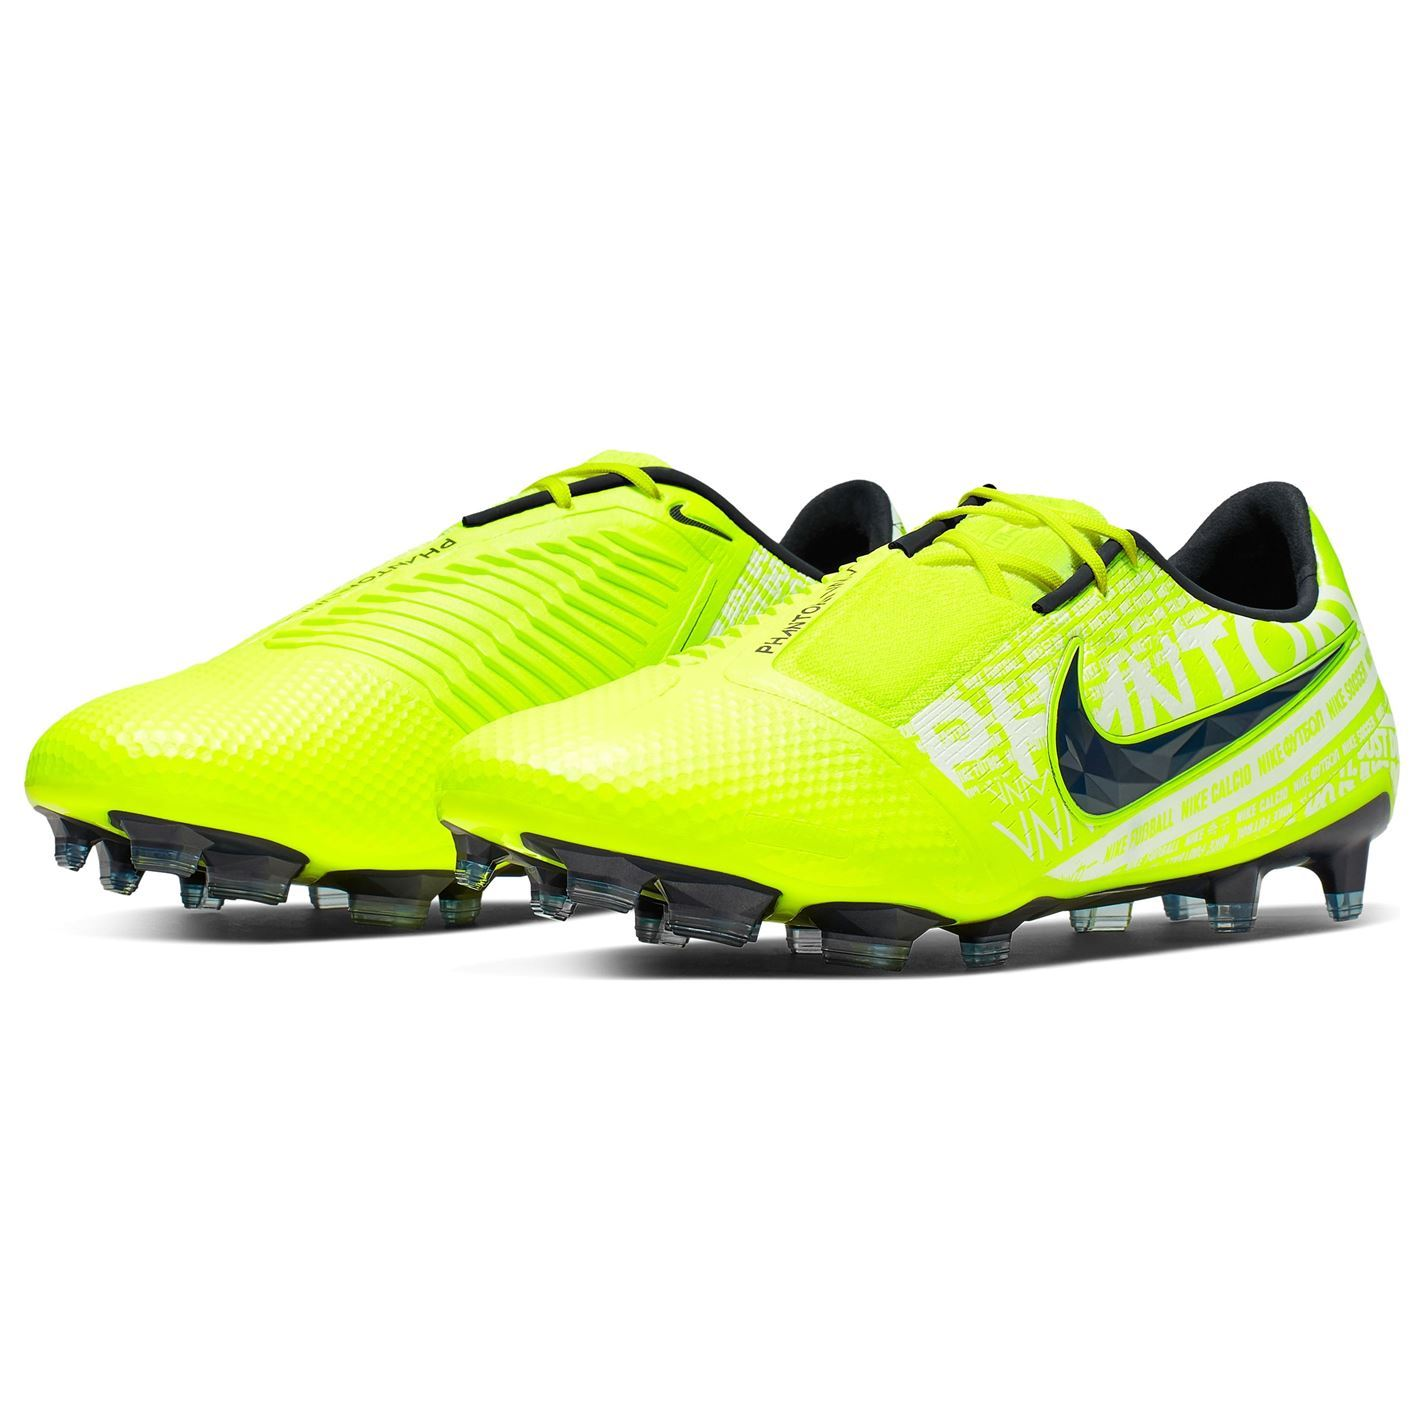 Nike-Phantom-Venom-Elite-Homme-FG-Firm-Ground-Chaussures-De-Football-Chaussures-de-foot-crampons miniature 23